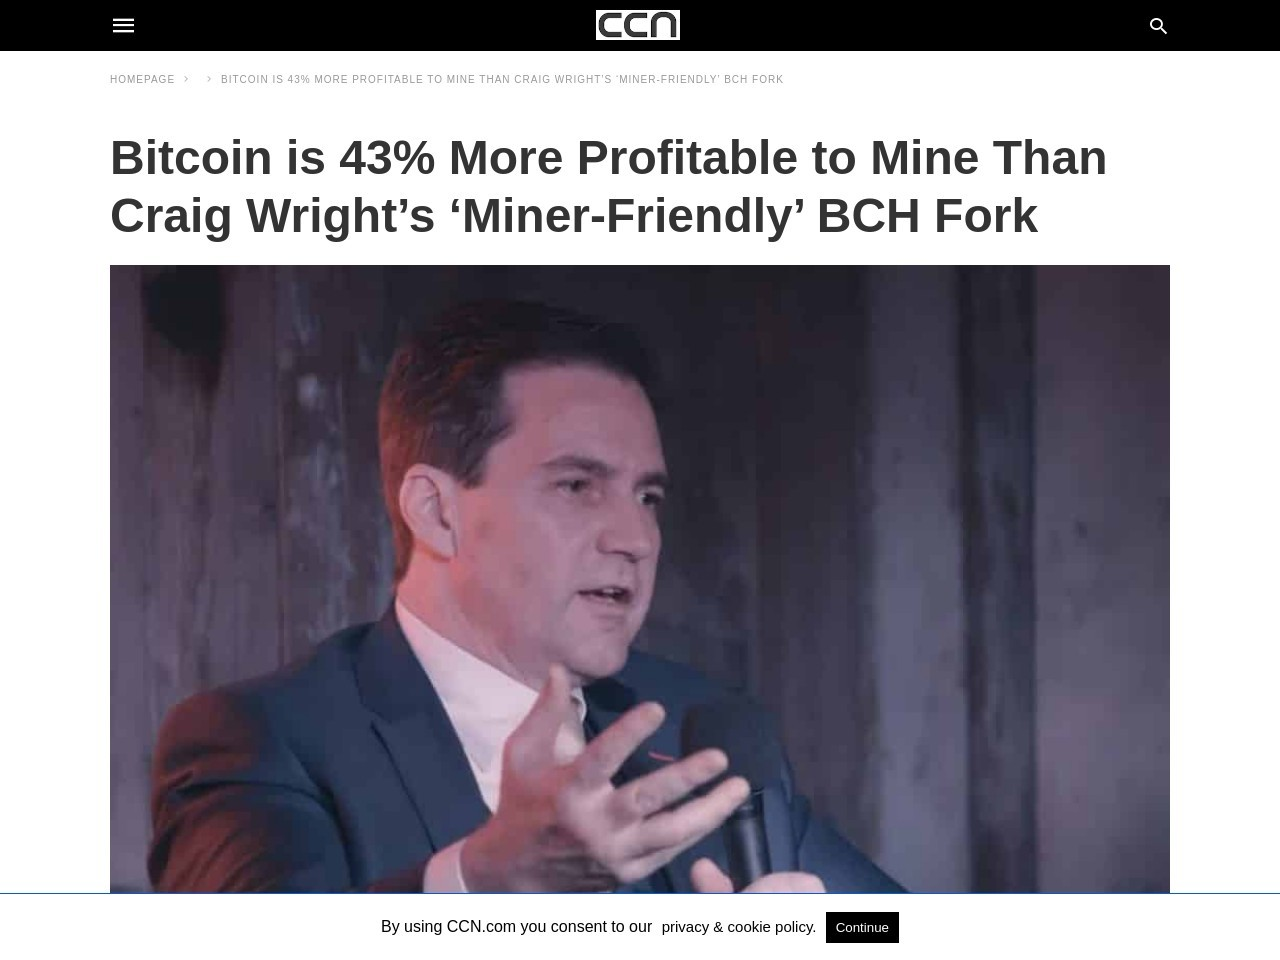 Bitcoin is 43% More Profitable to Mine Than Craig Wright's 'Miner-Friendly' BCH Fork